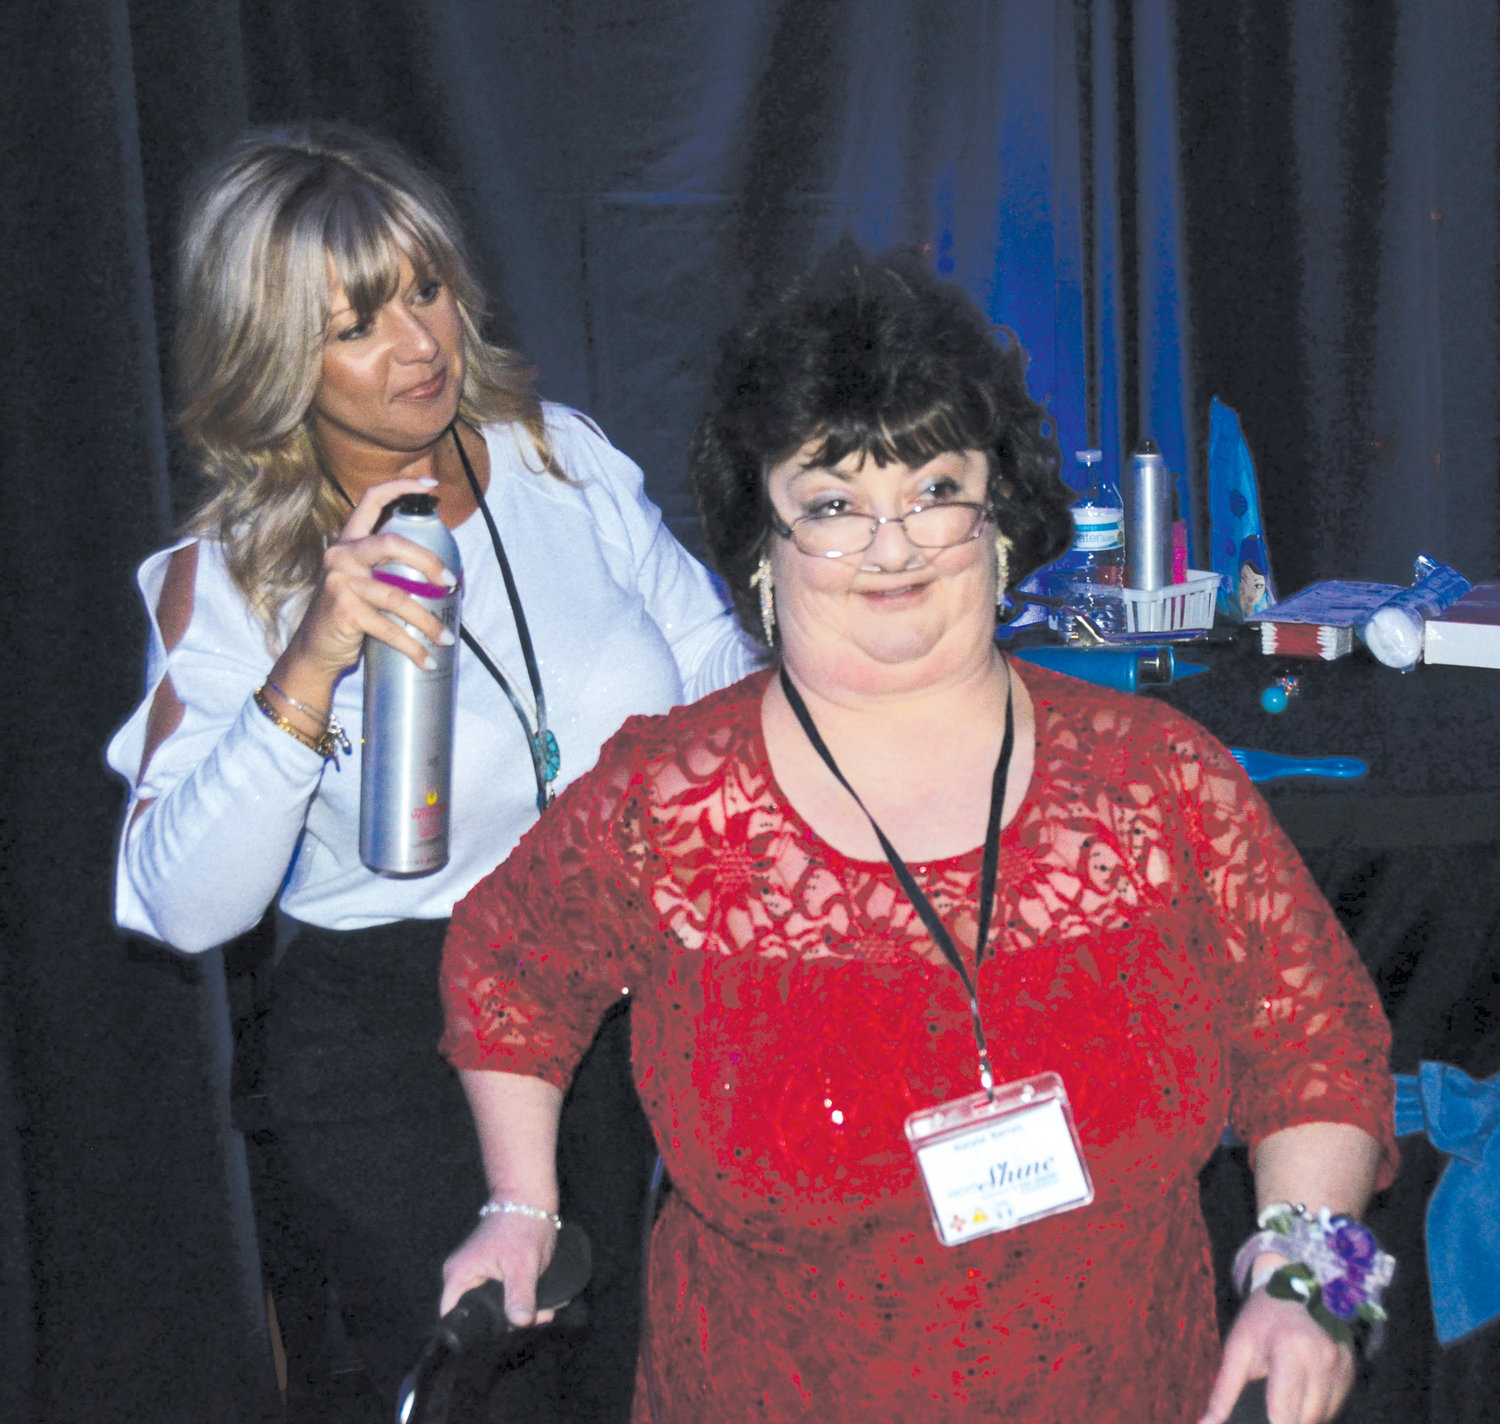 Natalie Barnes of Benson gets a touch of hairspray from volunteer Stephanie Norris of Mt. Carmel PFWB Church which hosted Night To Shine, a prom for special needs guests in the area.